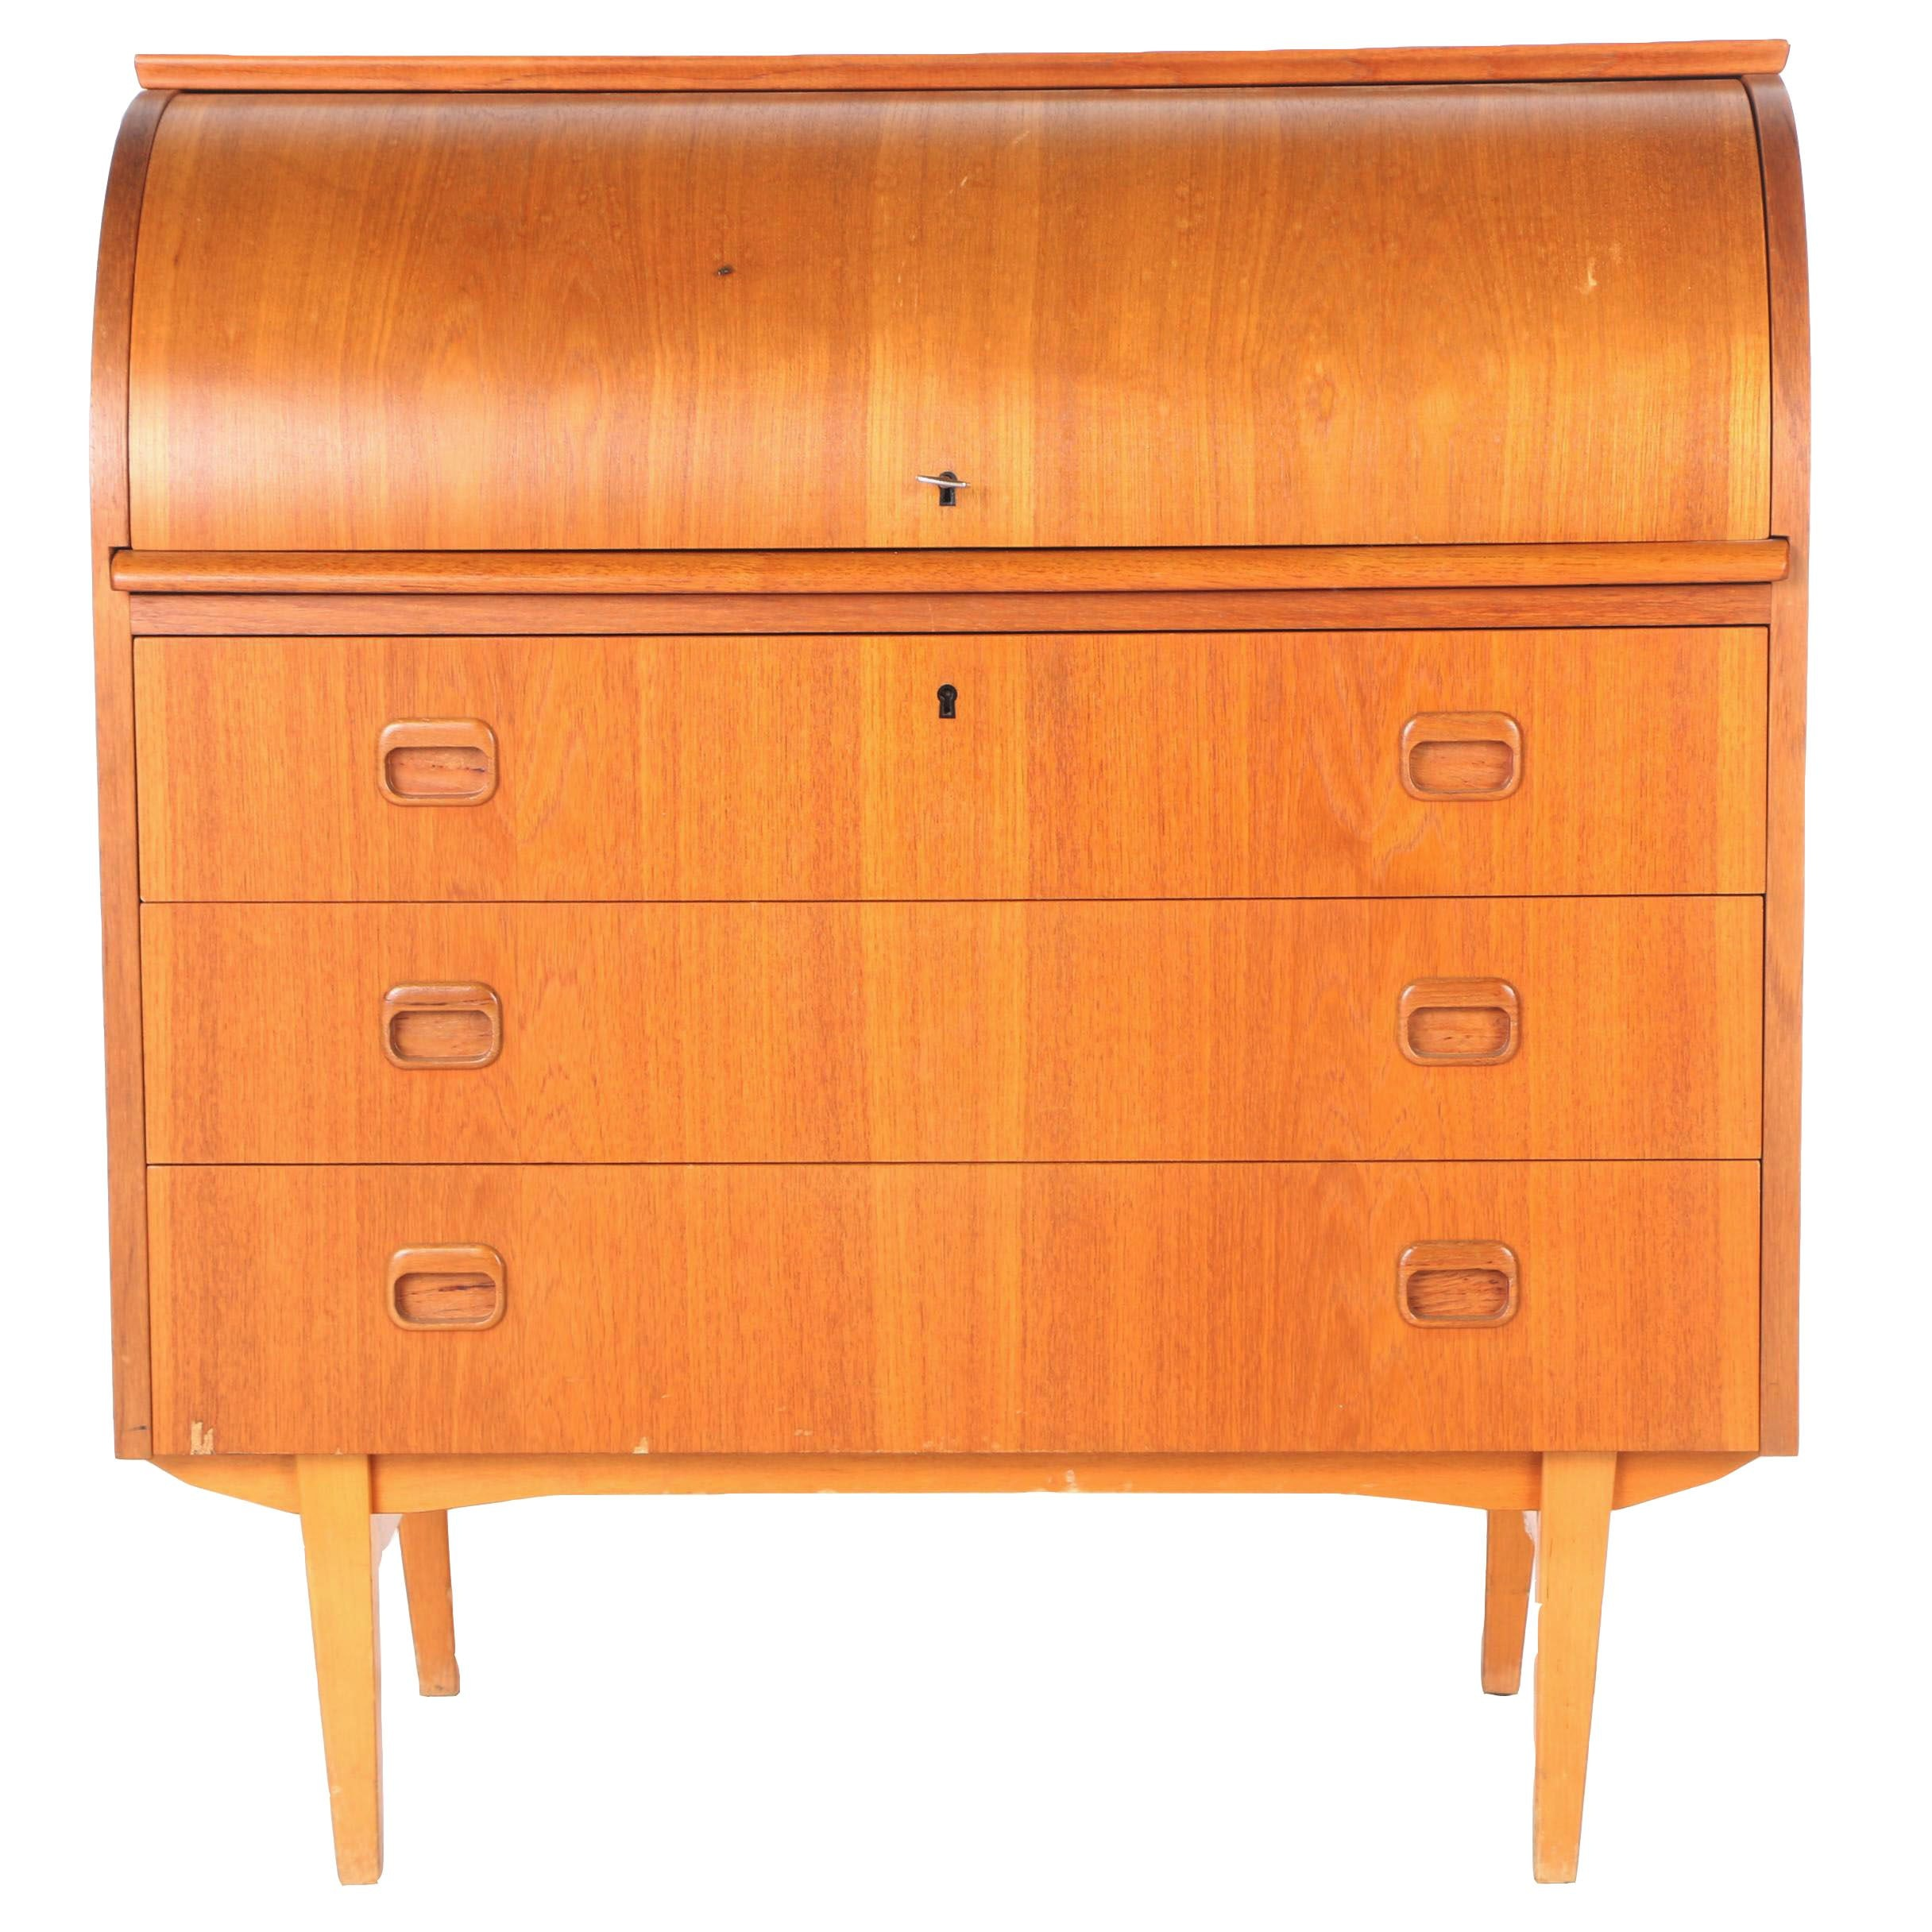 Danish Modern Roll Top Desk by Egon Ostergaard